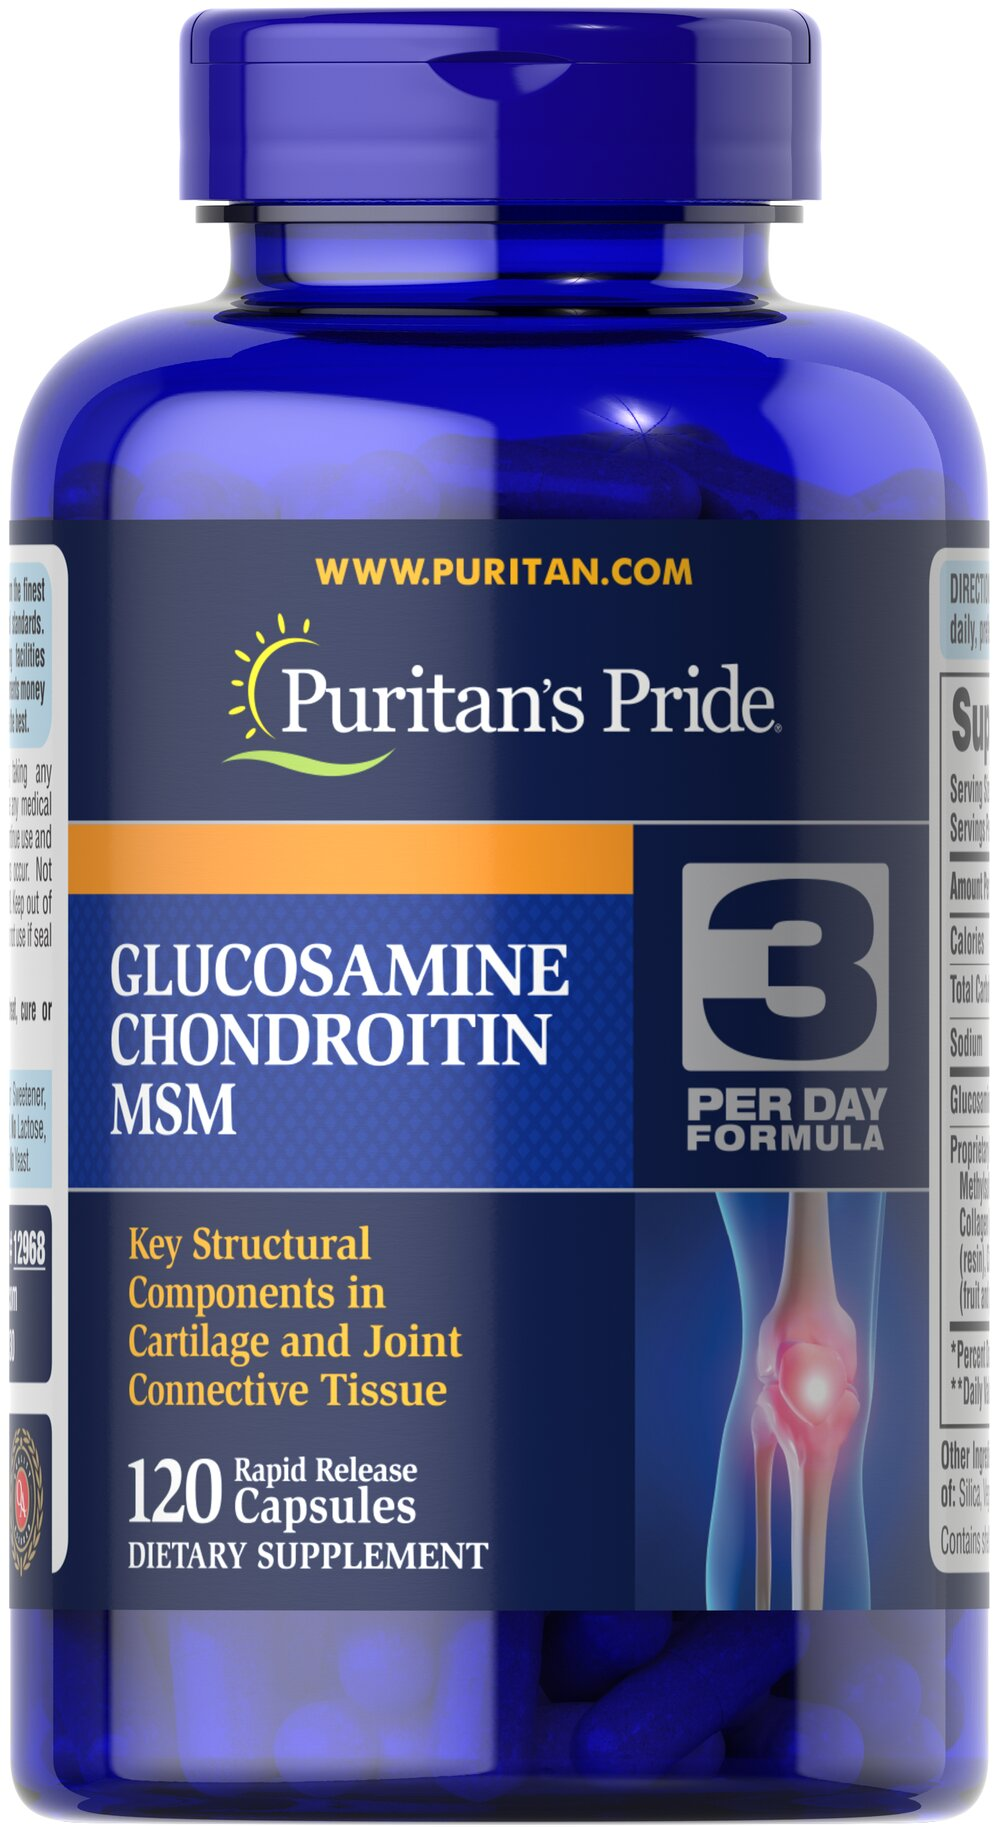 Double Strength Glucosamine, Chondroitin & MSM Joint Soother® <p></p>Joint Soother® is one of our most sought after joint care formulas.** This double strength Joint Soother® combines the top three structural components found in popular joint support products — Glucosamine, Chondroitin and MSM.** This high-quality formula delivers 1,500 mg of Glucosamine HCl to help support cartilage, nourish the joints, and it helps with occasional joint stress due to exercise or